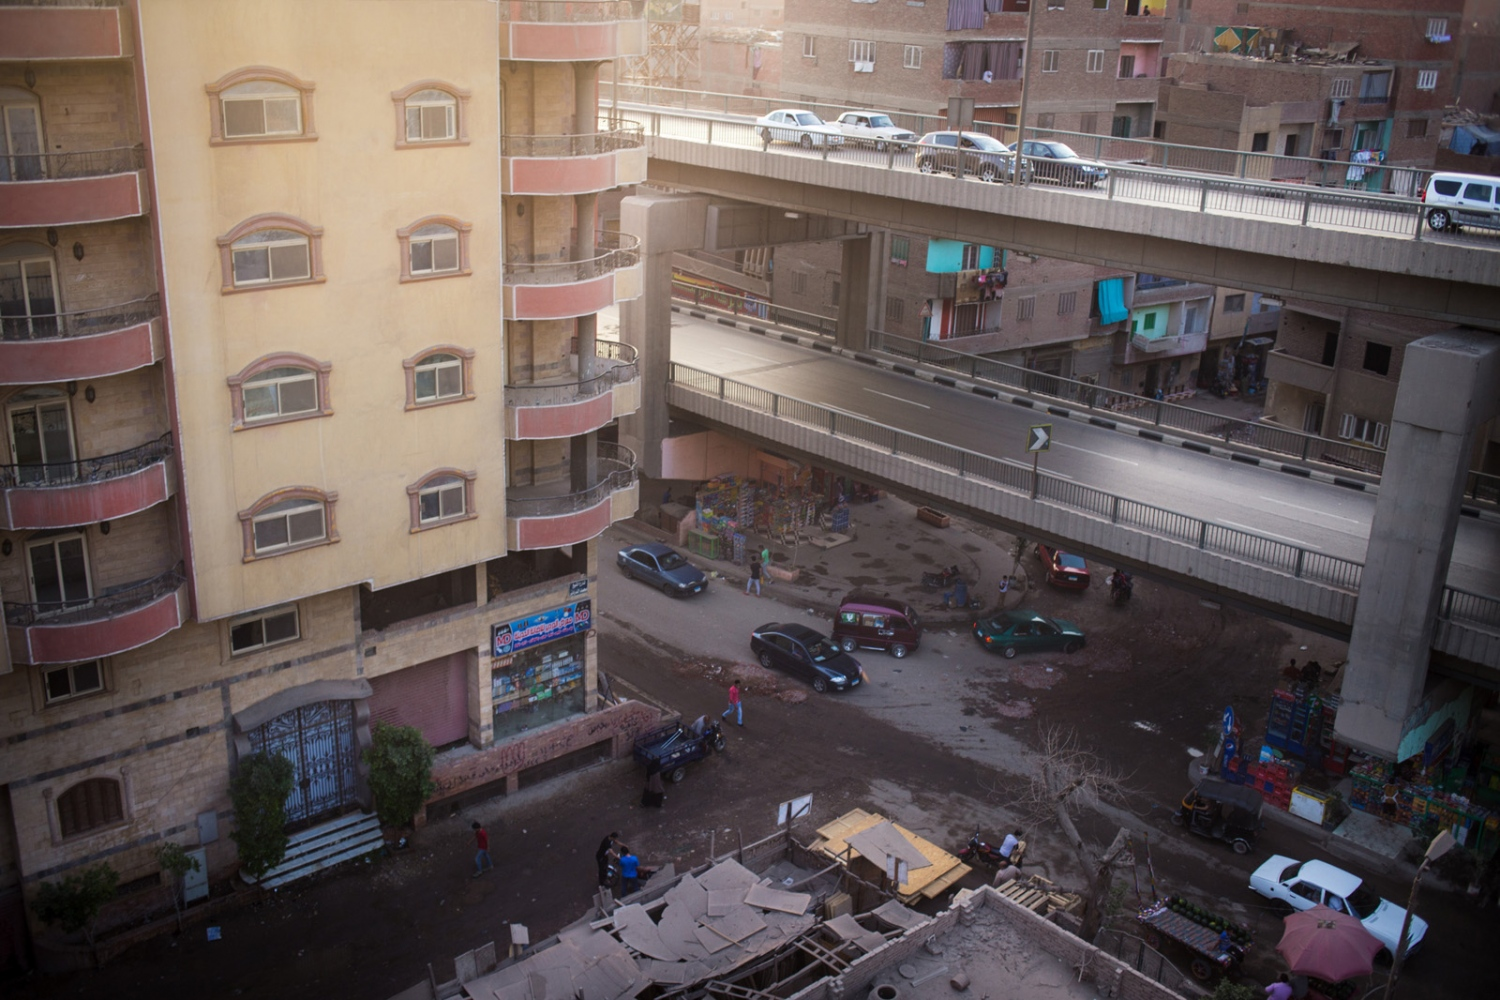 p.p1 {margin: 0.0px 0.0px 0.0px 0.0px; font: 10.0px 'Lucida Grande'} The Saft el Laban area of Cairo is seen from atop an apartment building. Ten years ago, this area consisted of farmland and single-family homes. The area is bisected by a busy highway overpass, and in response to rapid population growth and the high cost to buy new land, residents began building towering concrete apartment blocks in a frenzied, unplanned development. Mish Madrasa is a grassroots volunteer group that provides tutoring and after school activities to poor children in Saft el Laban, a slum neighborhood of Cairo.